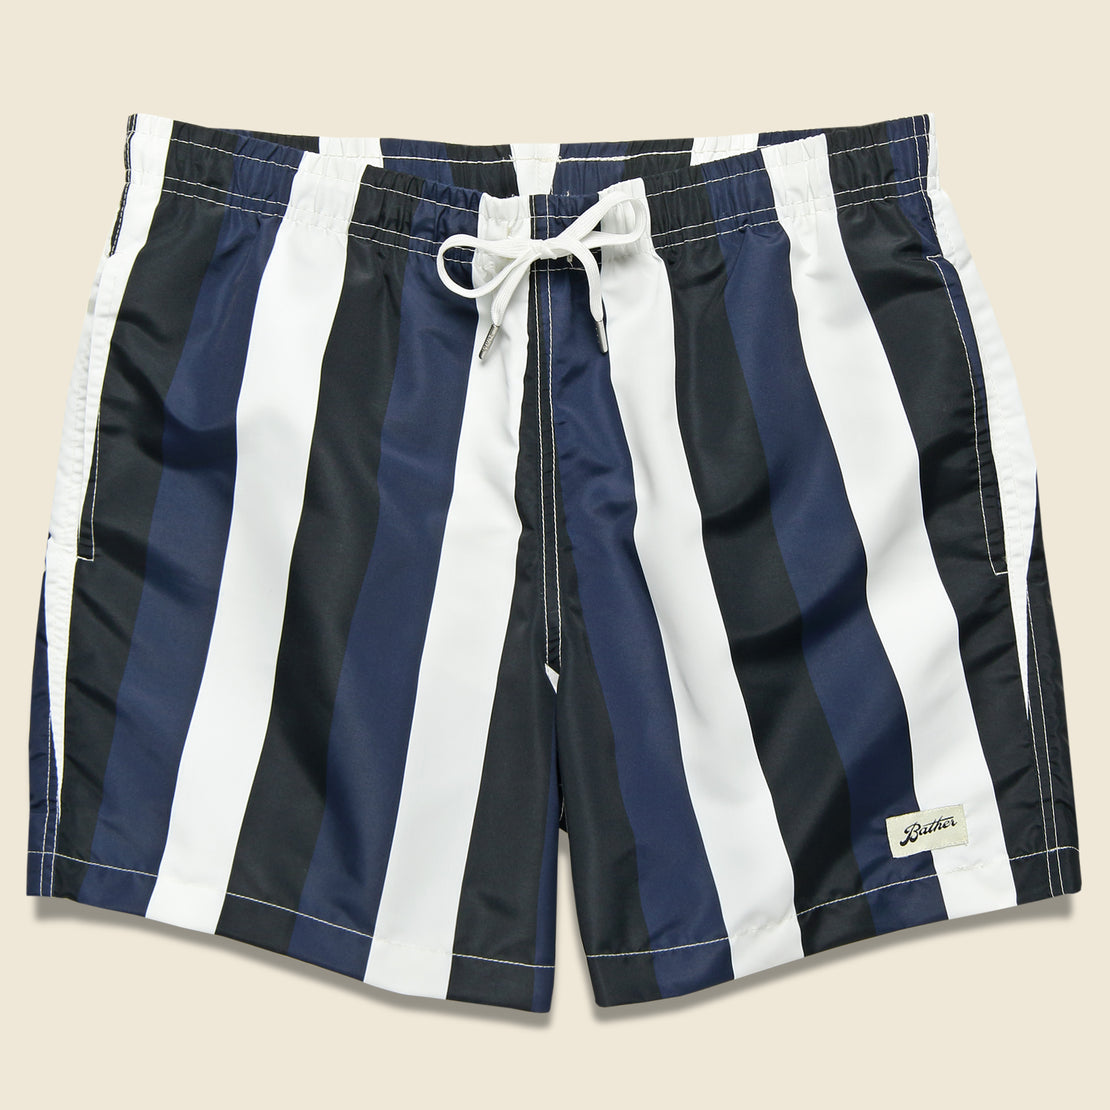 Bather Trunk Co. Striped Swim Trunk - Blue/Black